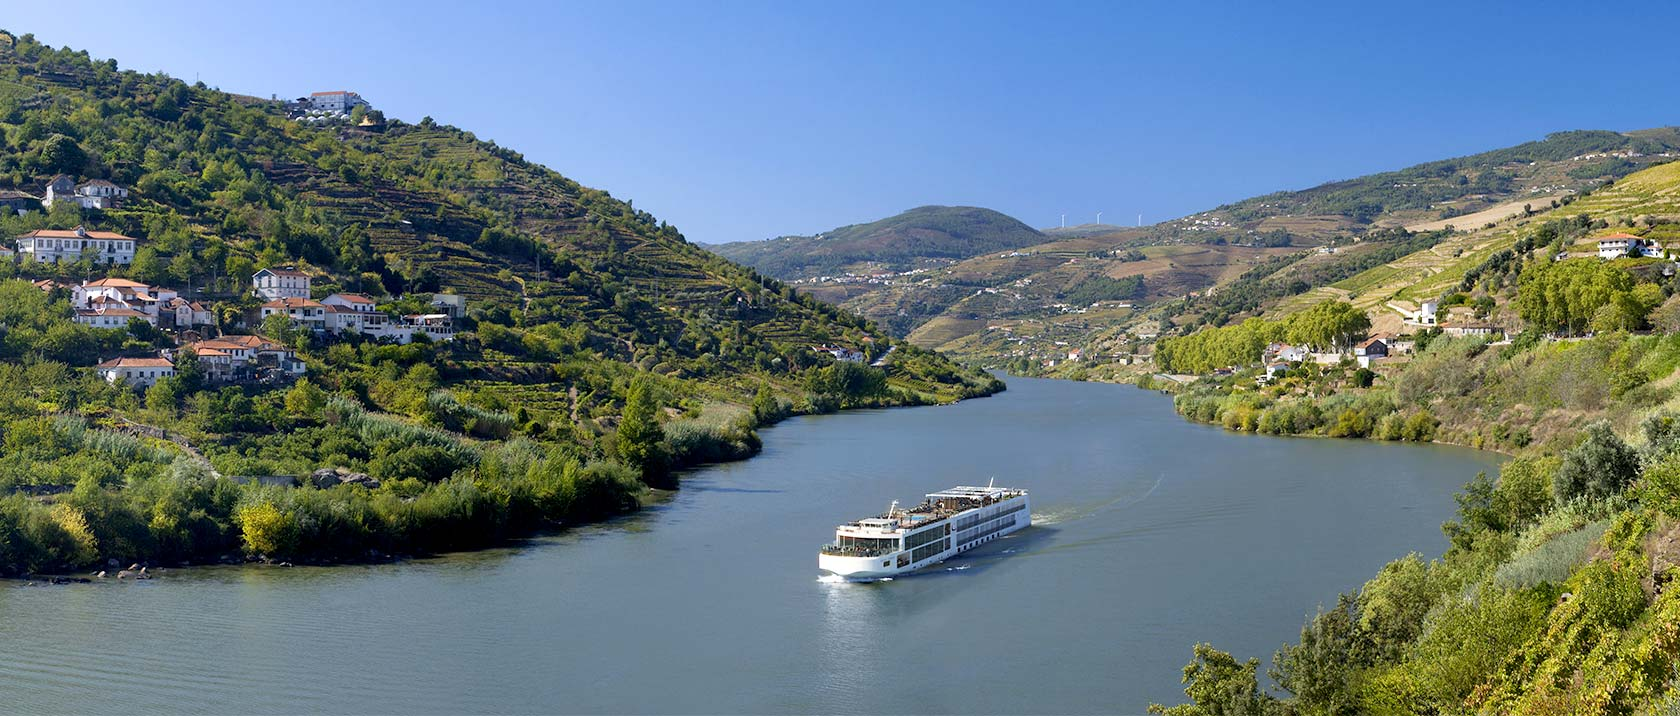 A Viking river ship sailing along the Douro River